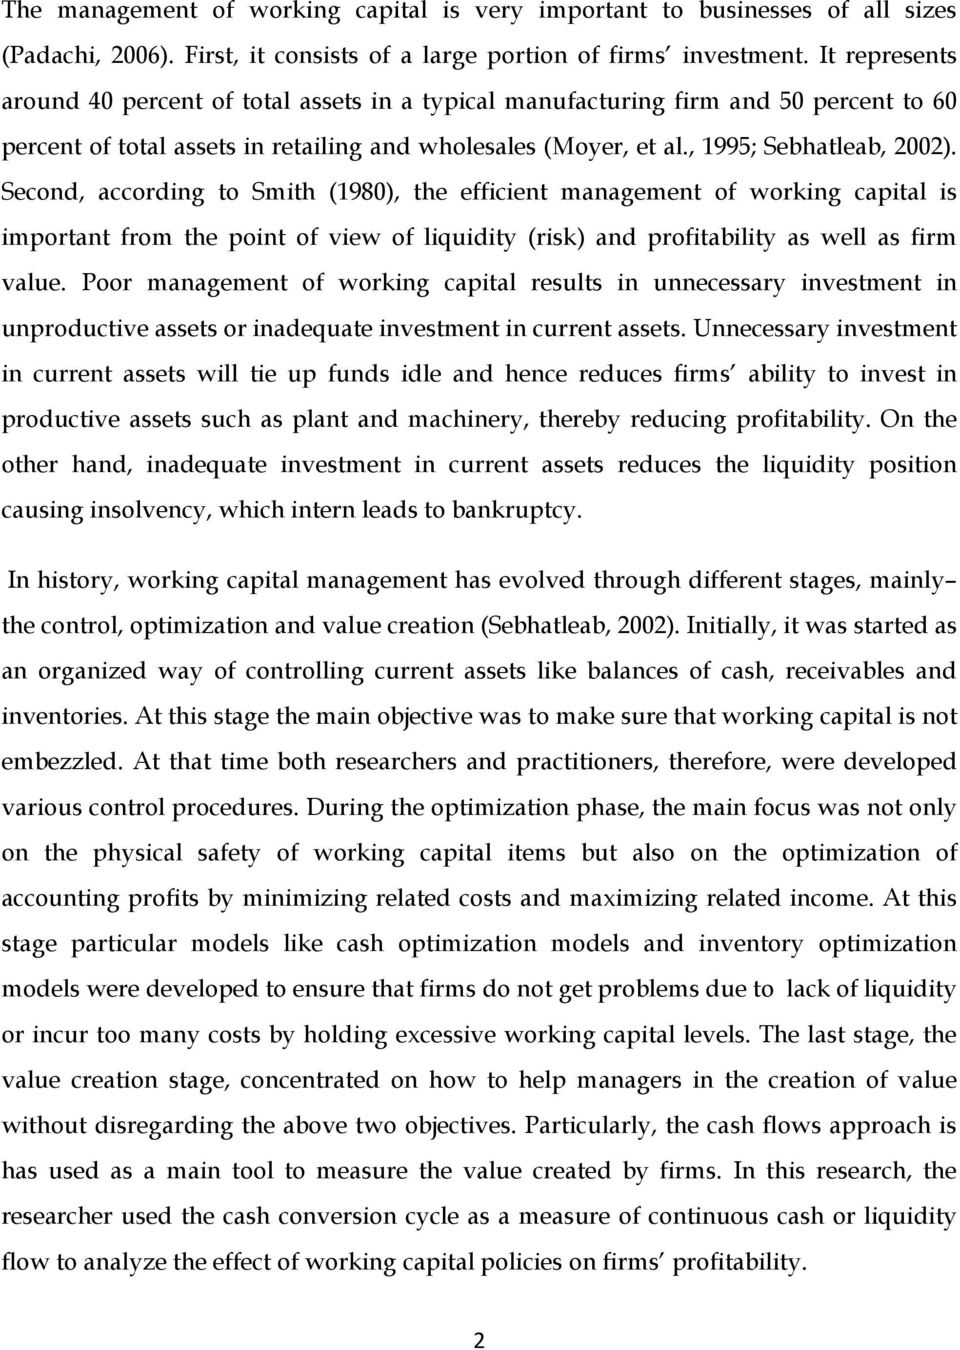 Doctoral thesis on working capital management